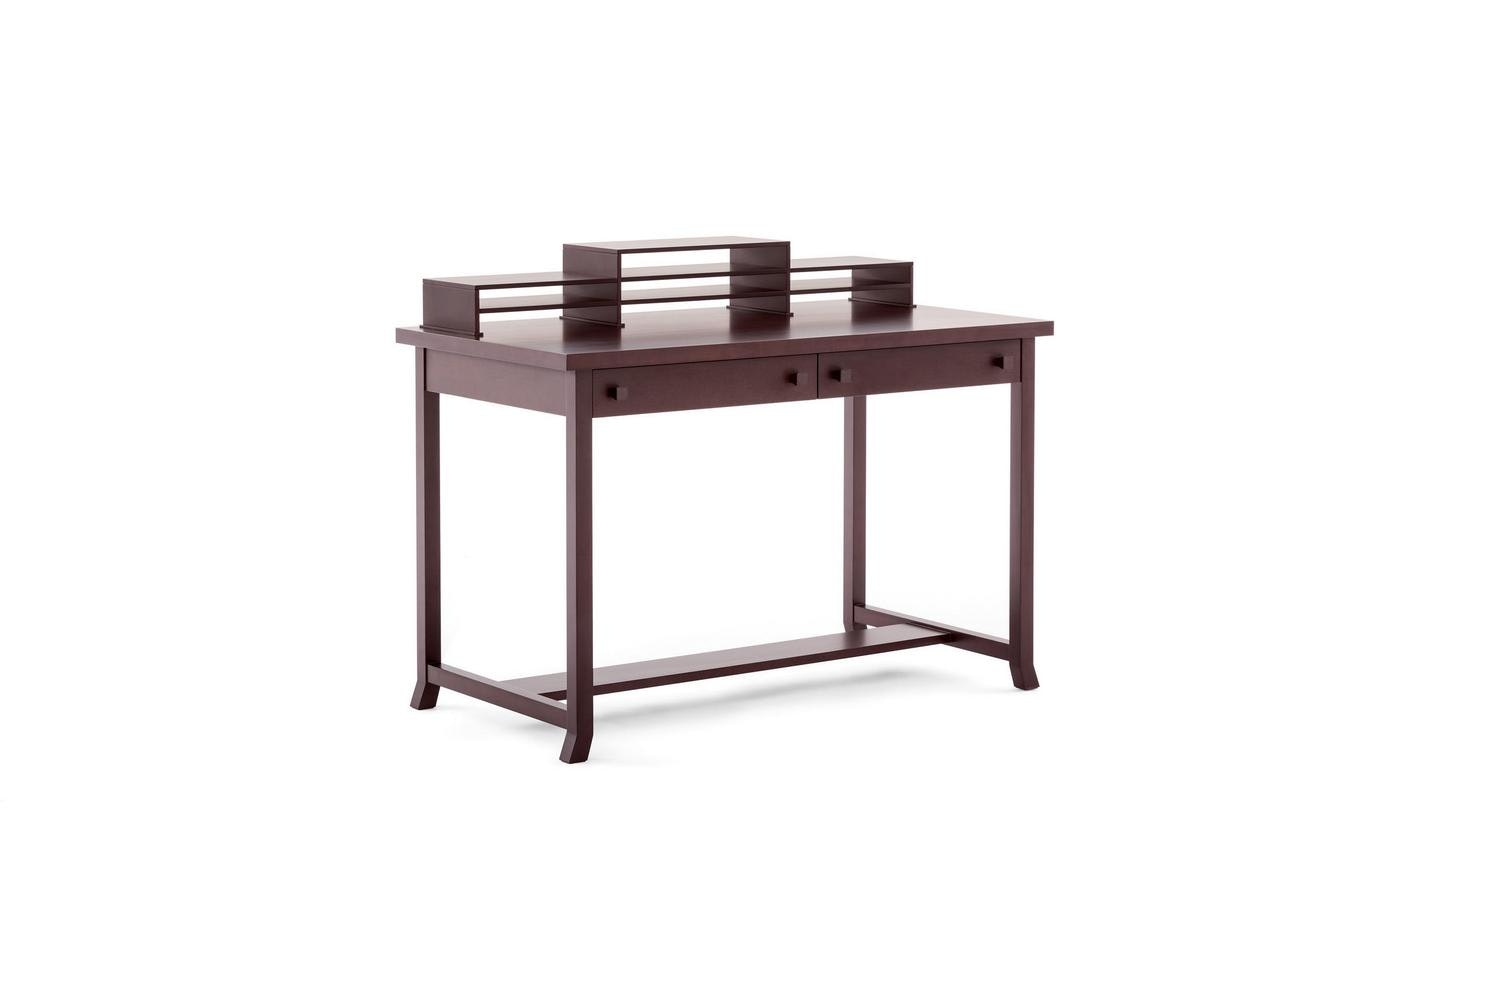 619 Meyer May Desk by Frank Lloyd Wright for Cassina